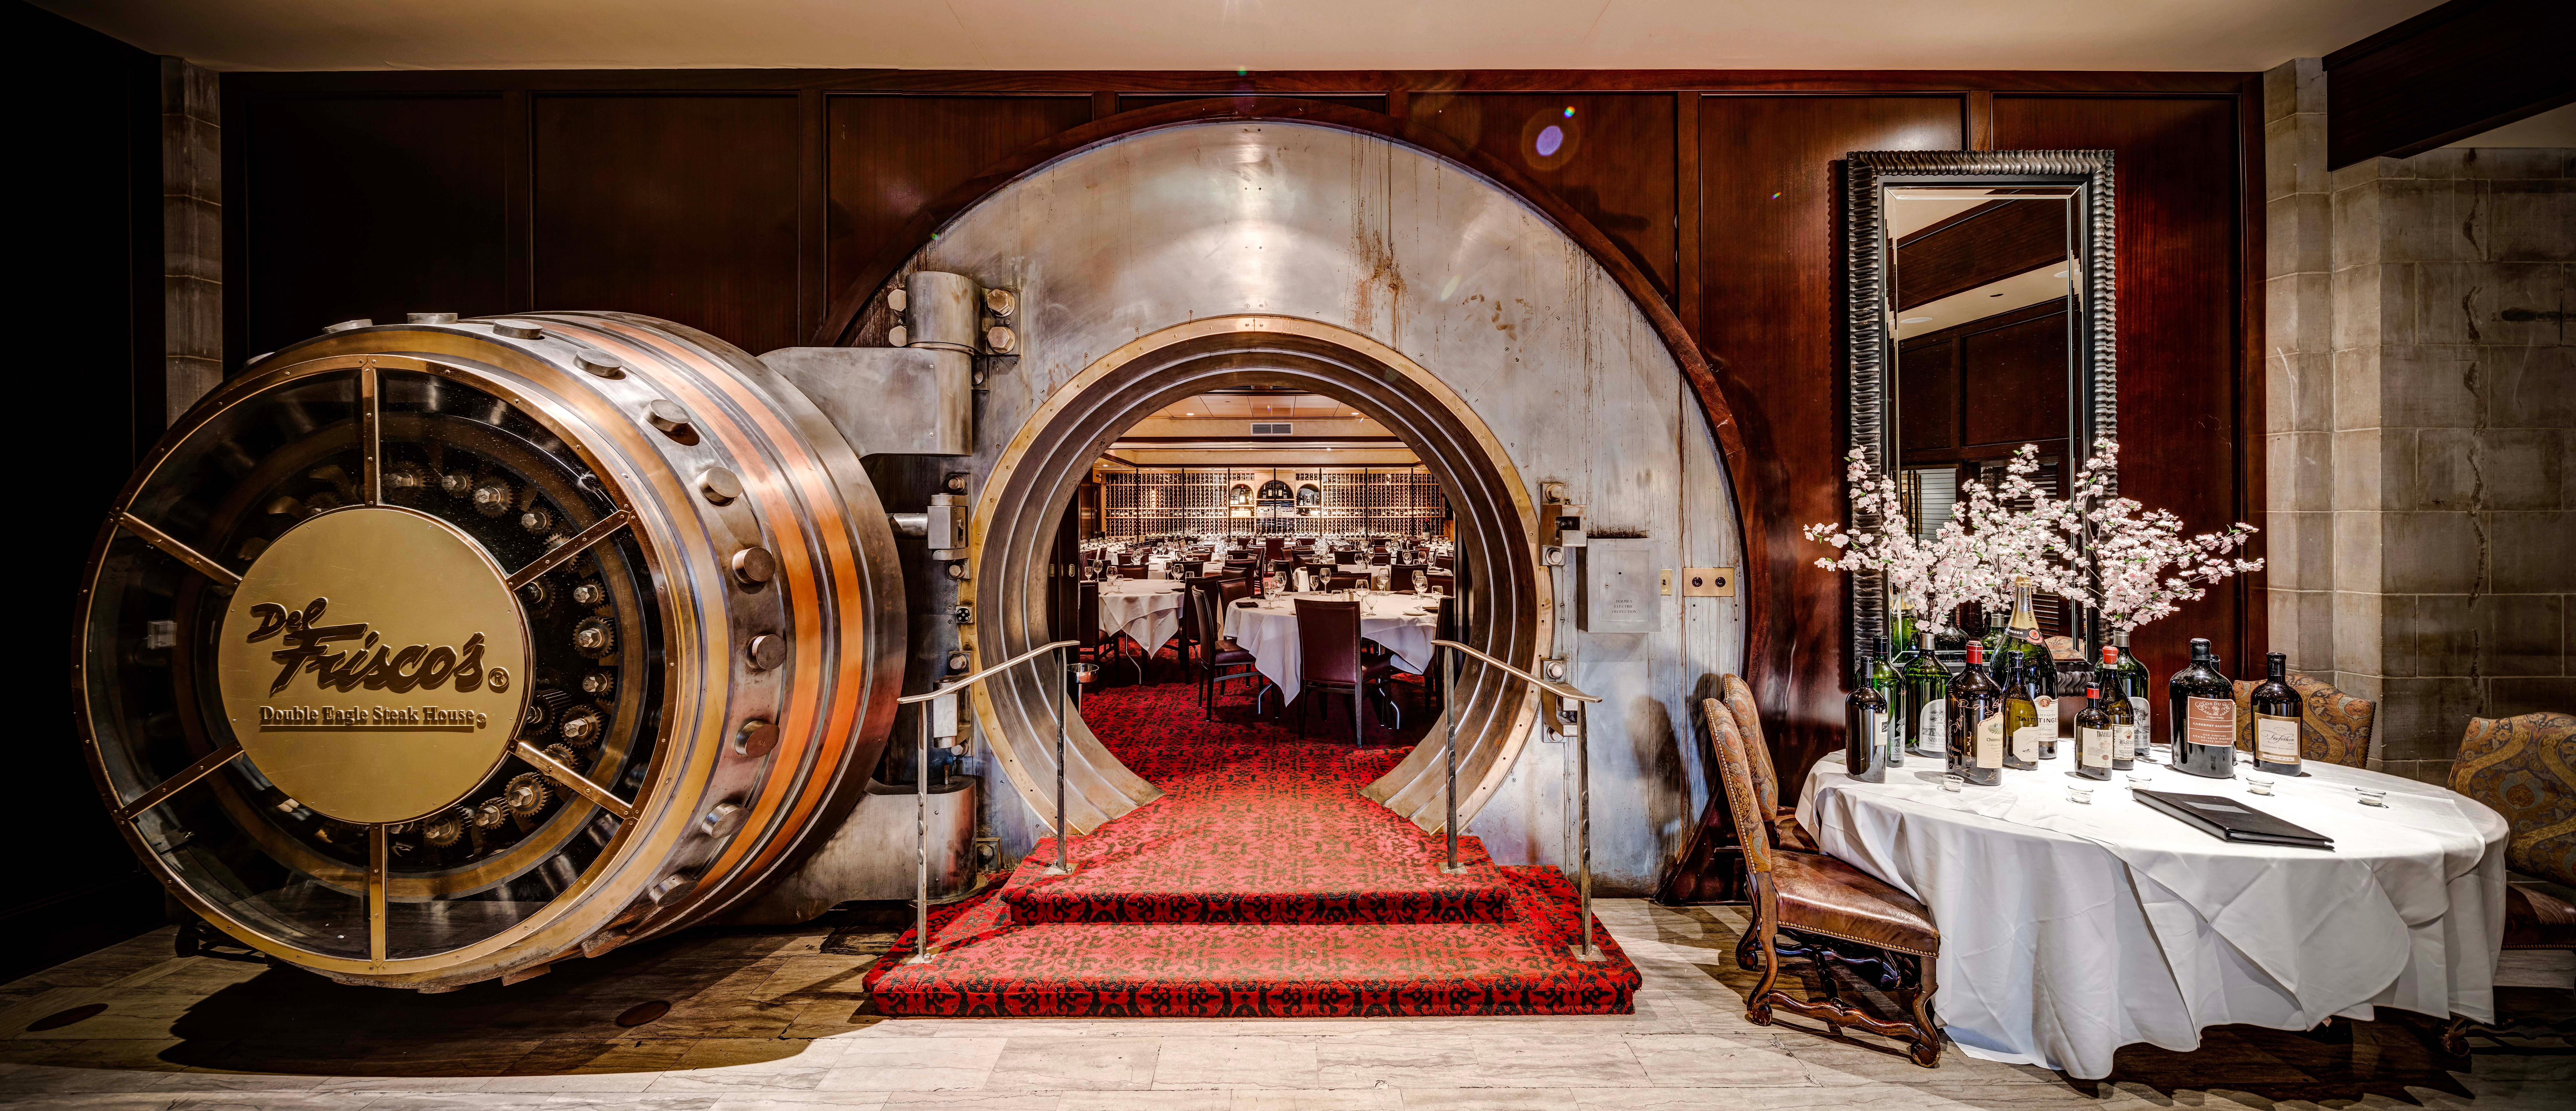 Del Frisco's Double Eagle Steakhouse Philadelphia Vault Full private dining room